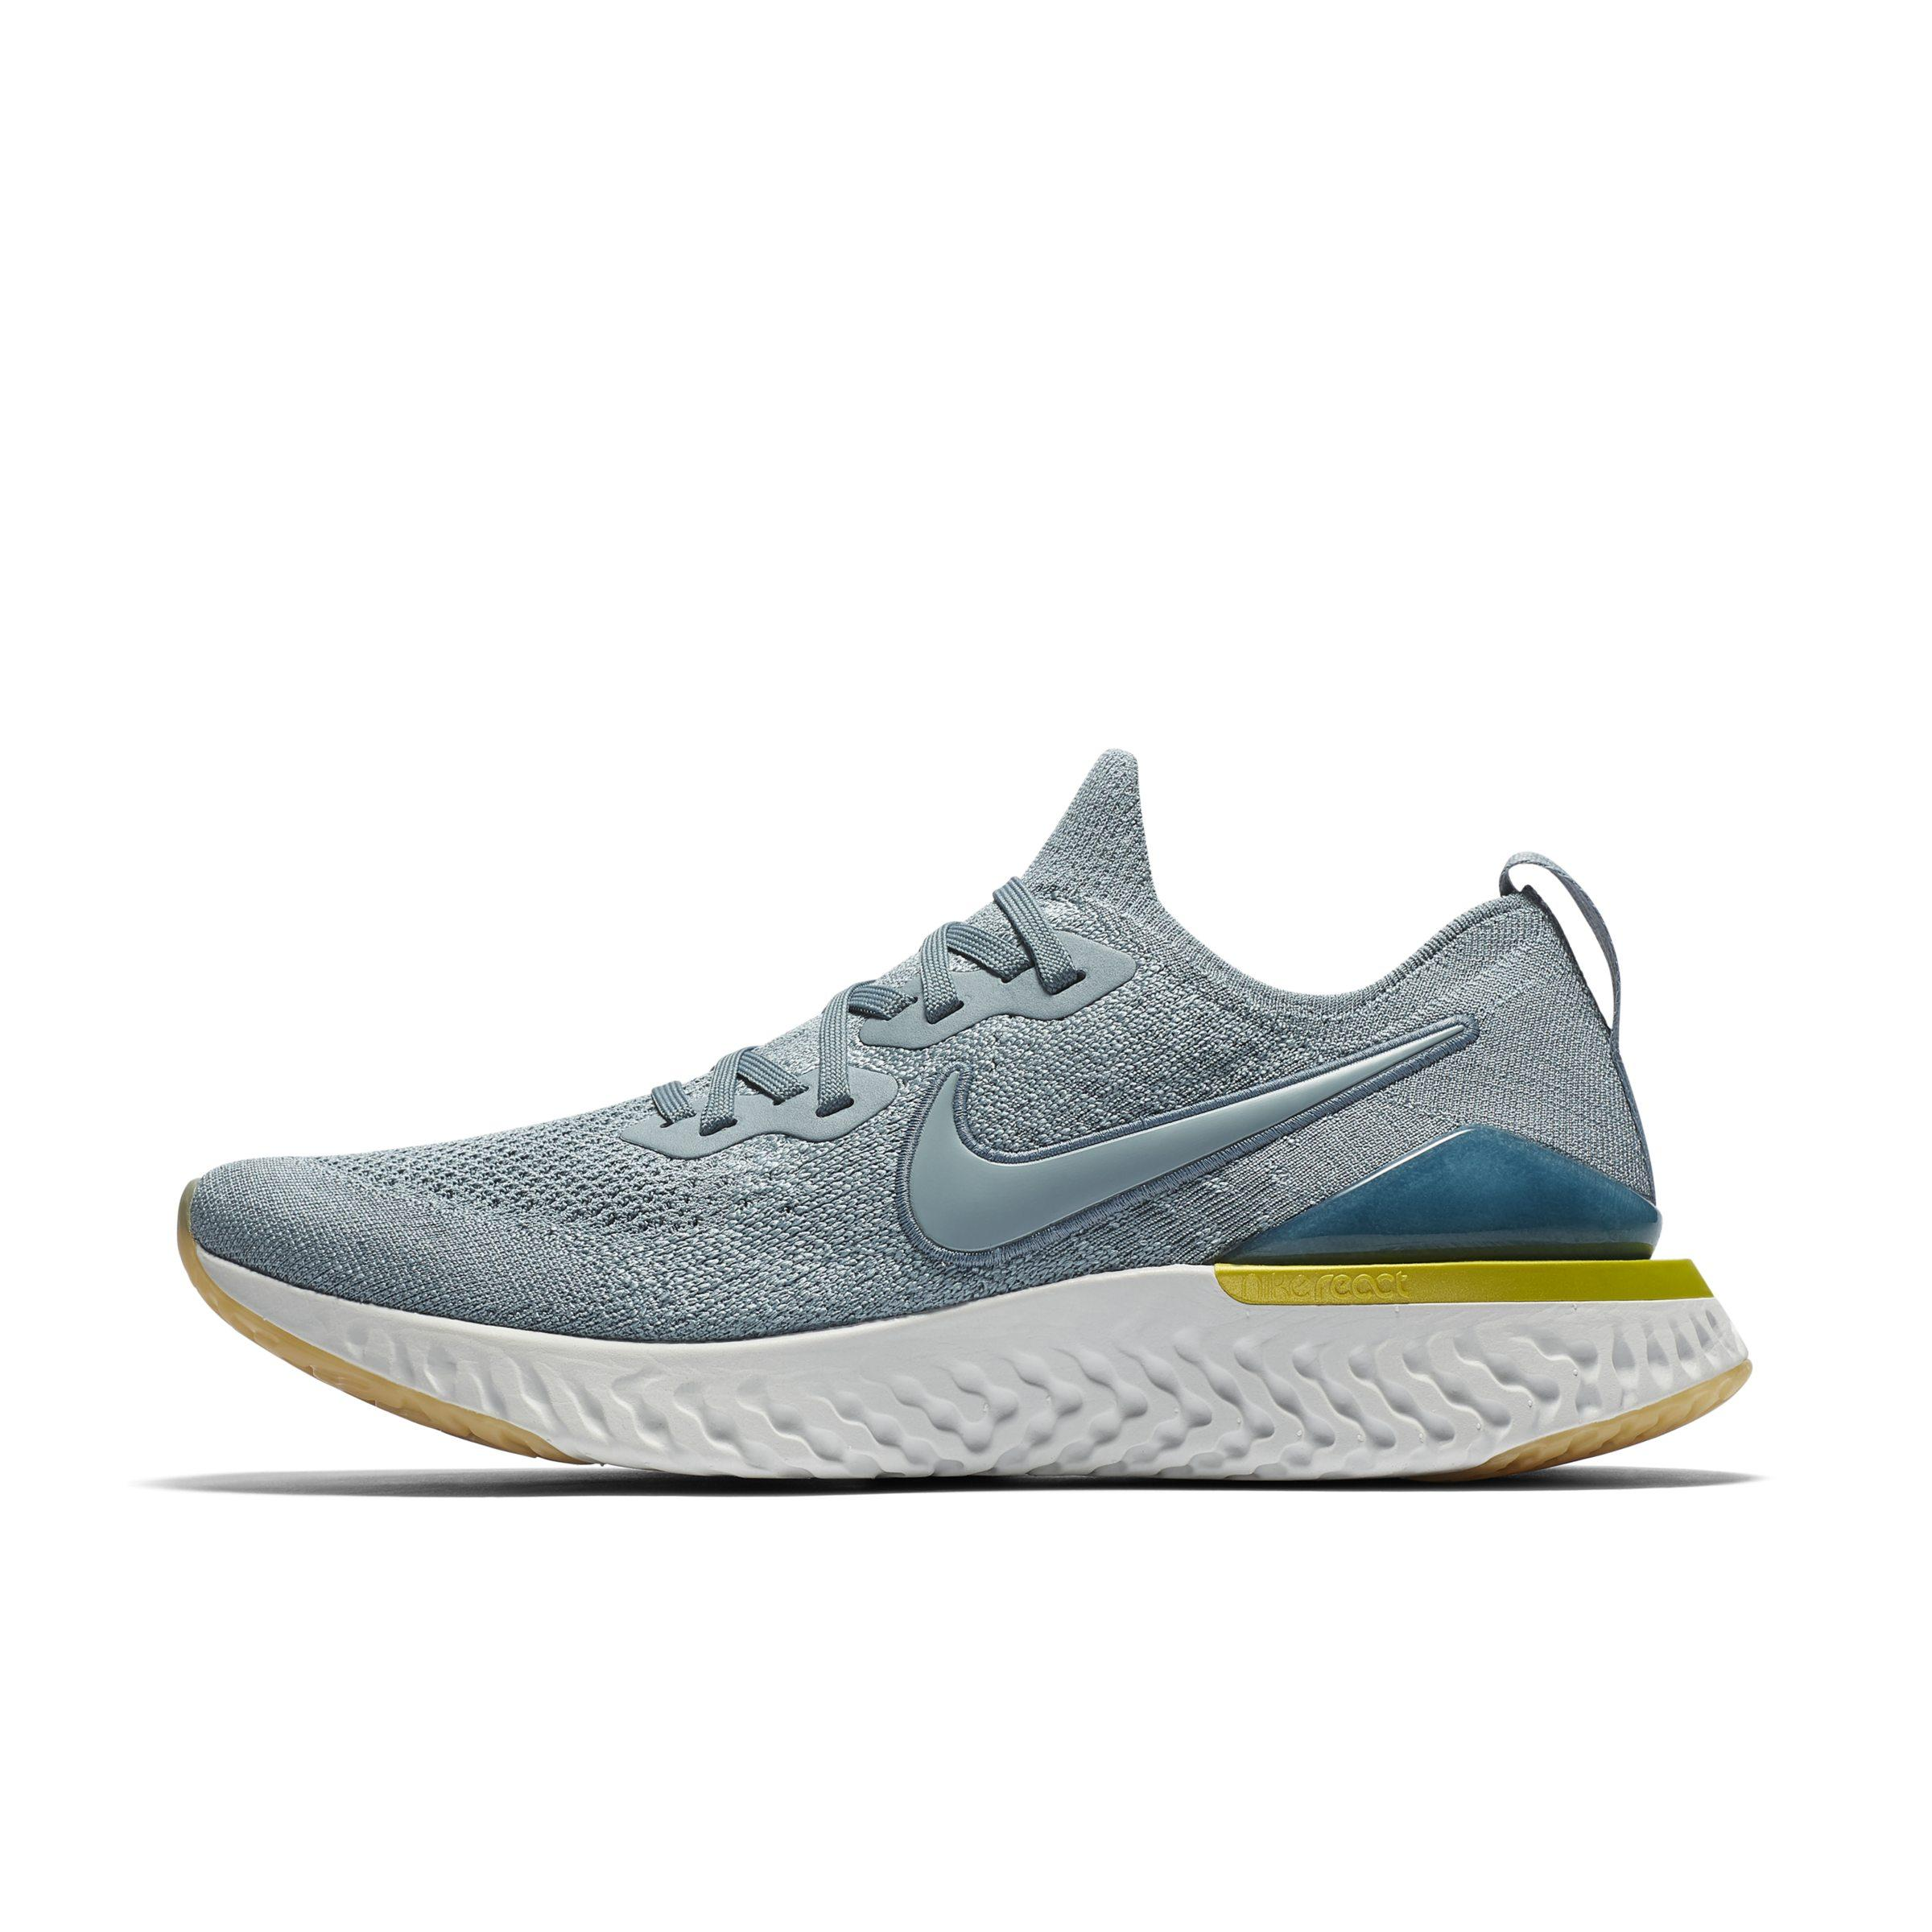 0c0129c6a10cb Nike Epic React Flyknit 2 Running Shoe in Gray for Men - Lyst